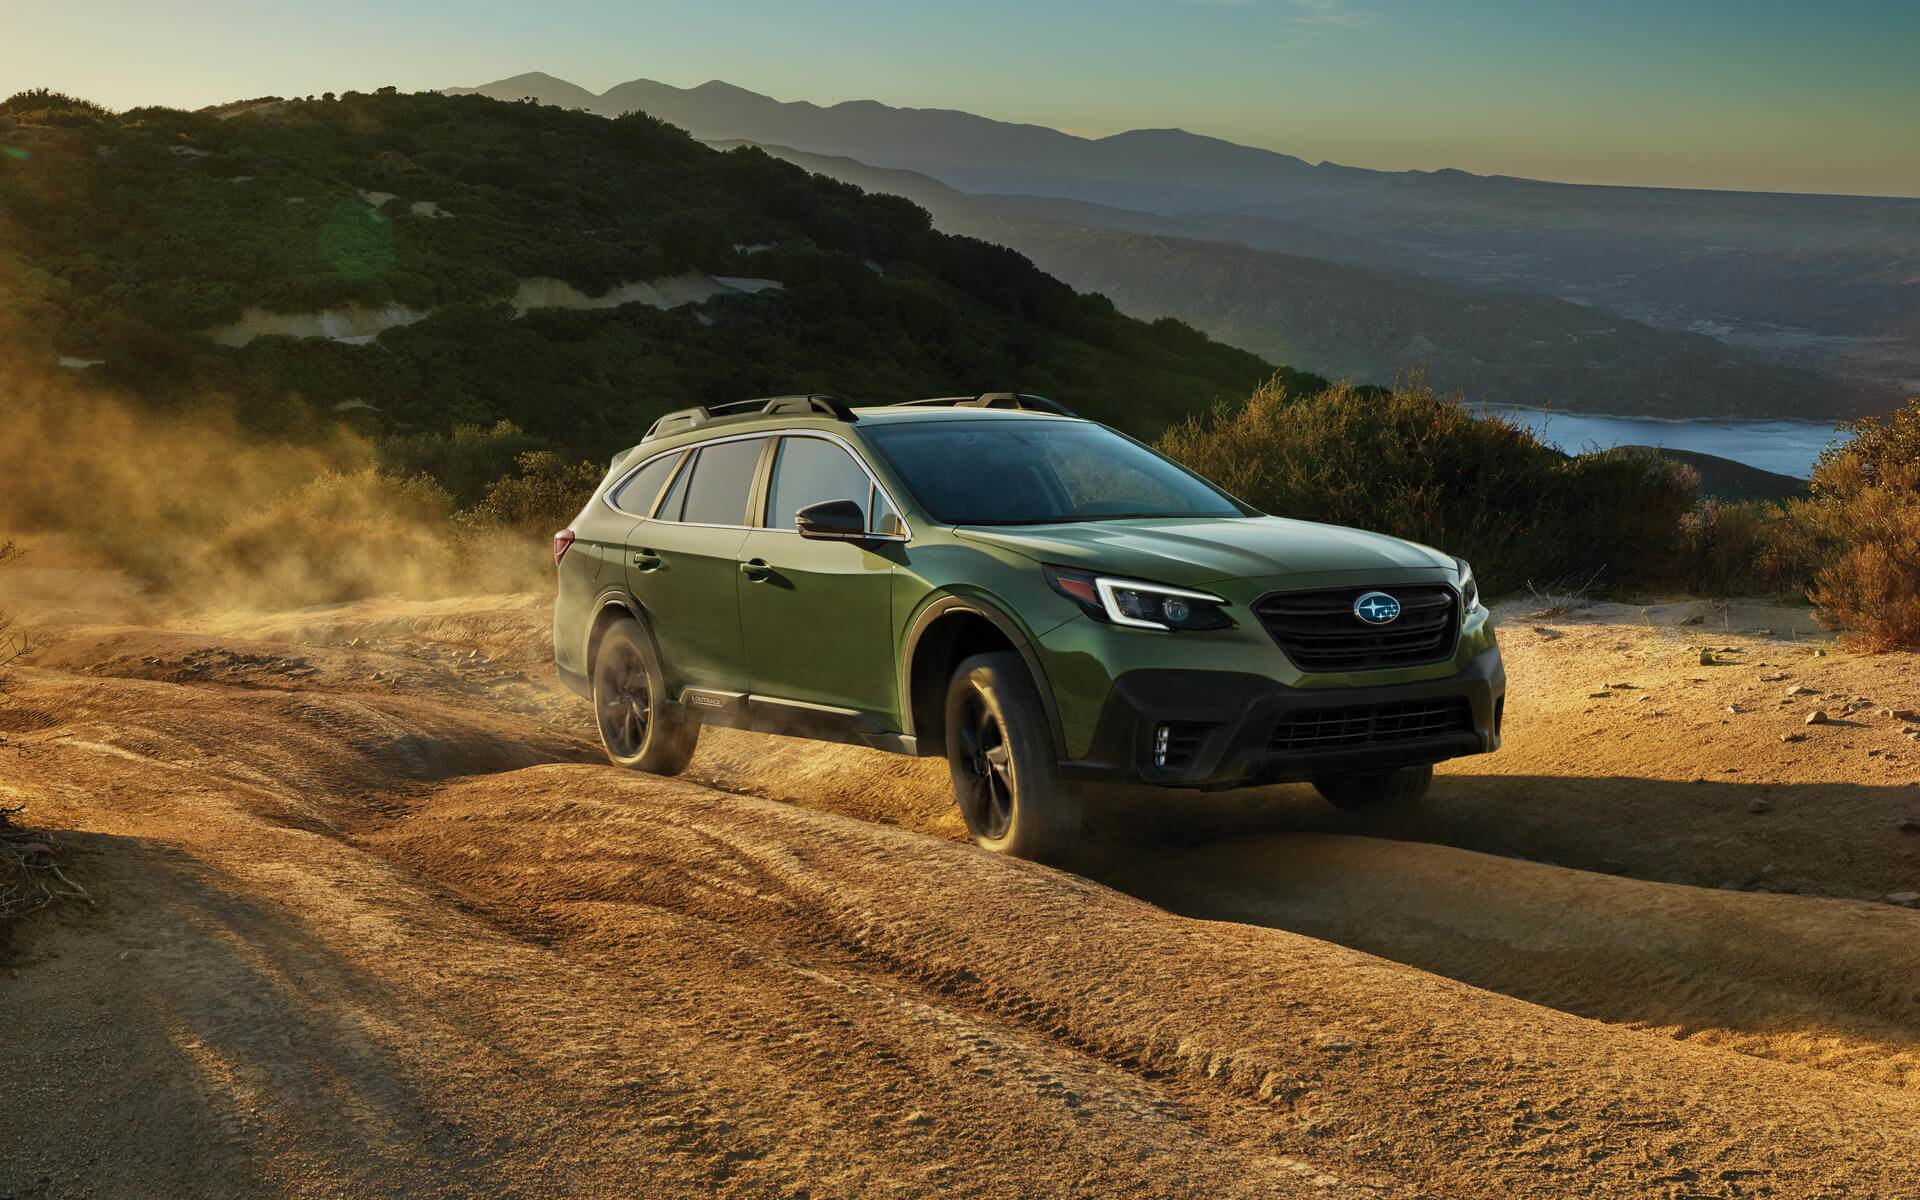 The all-new 2020 Subaru Outback